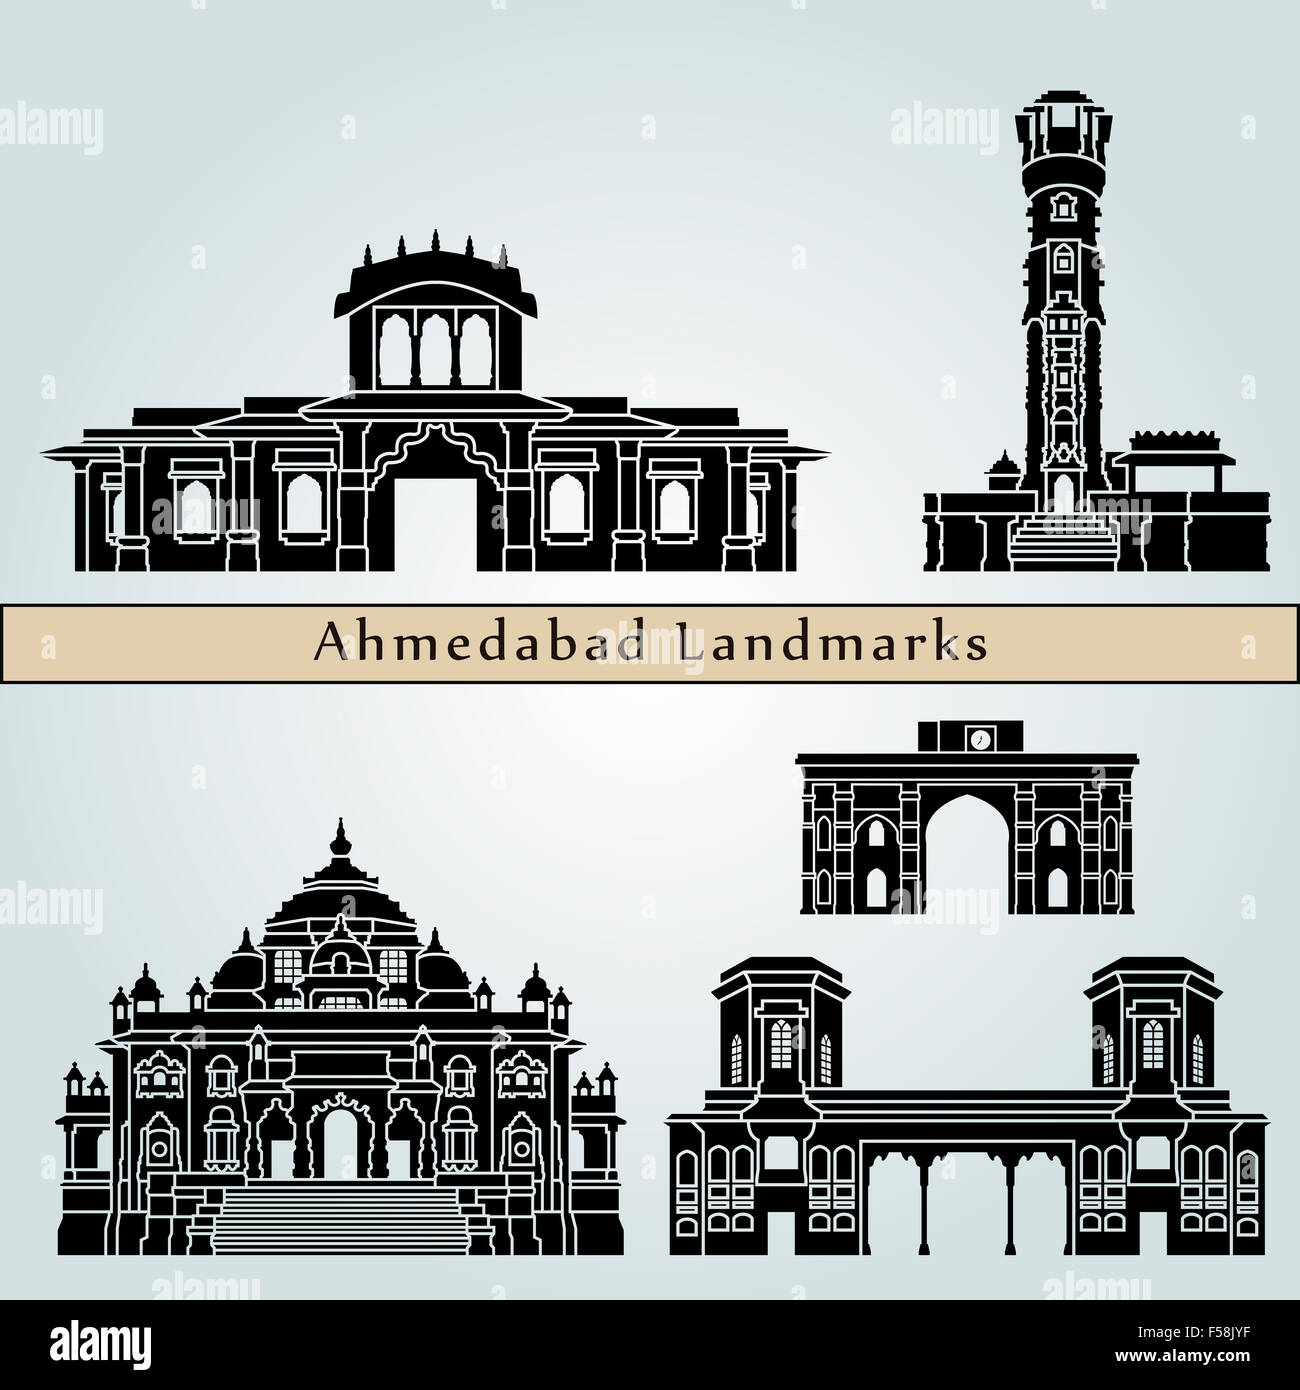 Ahmedabad landmarks and monuments isolated on blue background in editable vector file - Stock Image